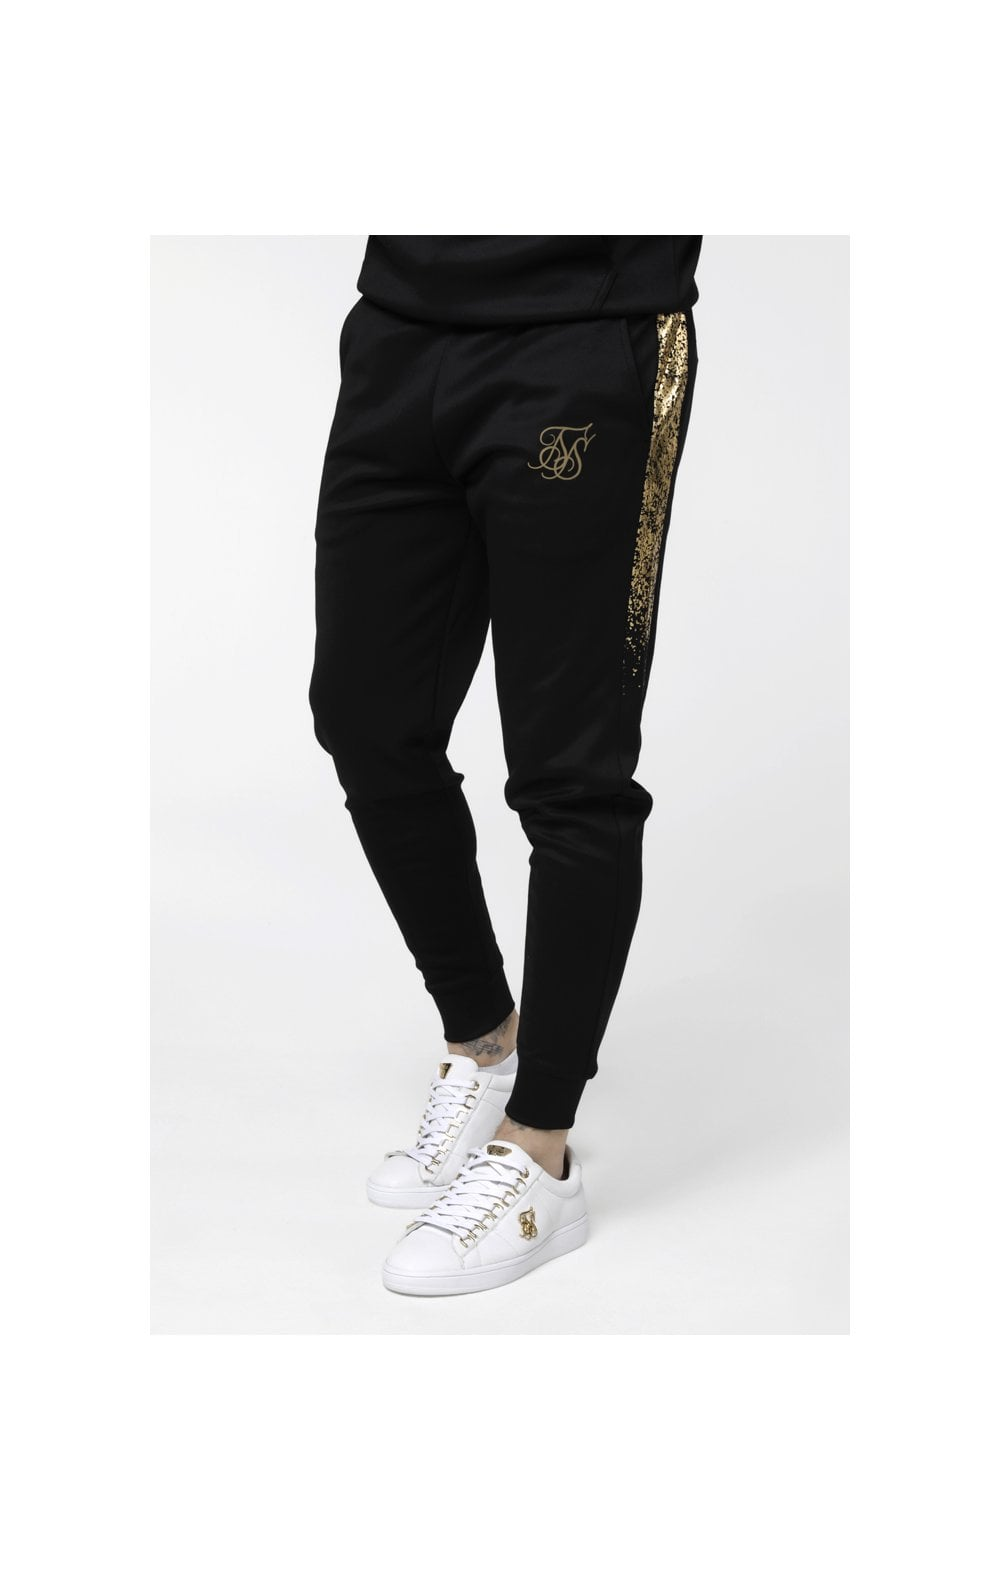 SikSilk Cuffed Cropped Foil Fade Panel Pants - Black & Gold (1)